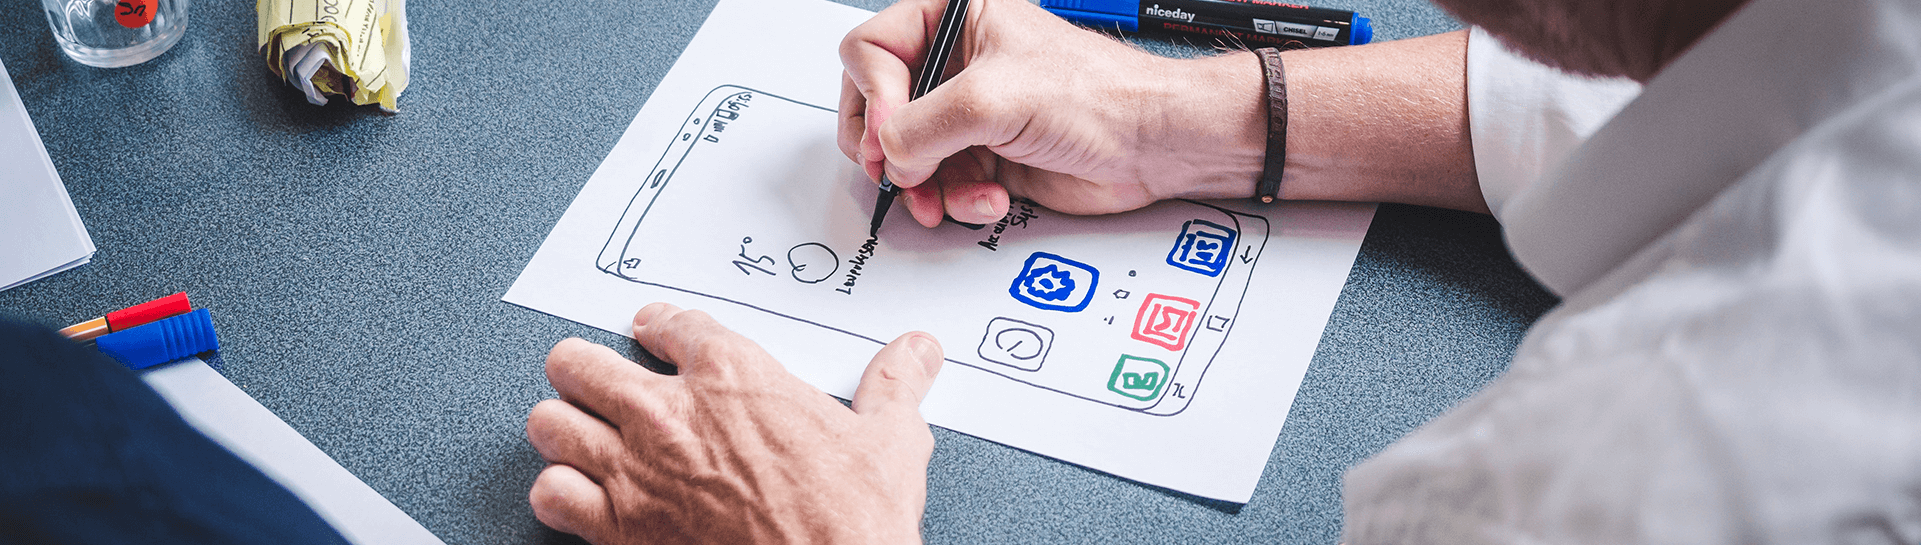 A person working on an app design